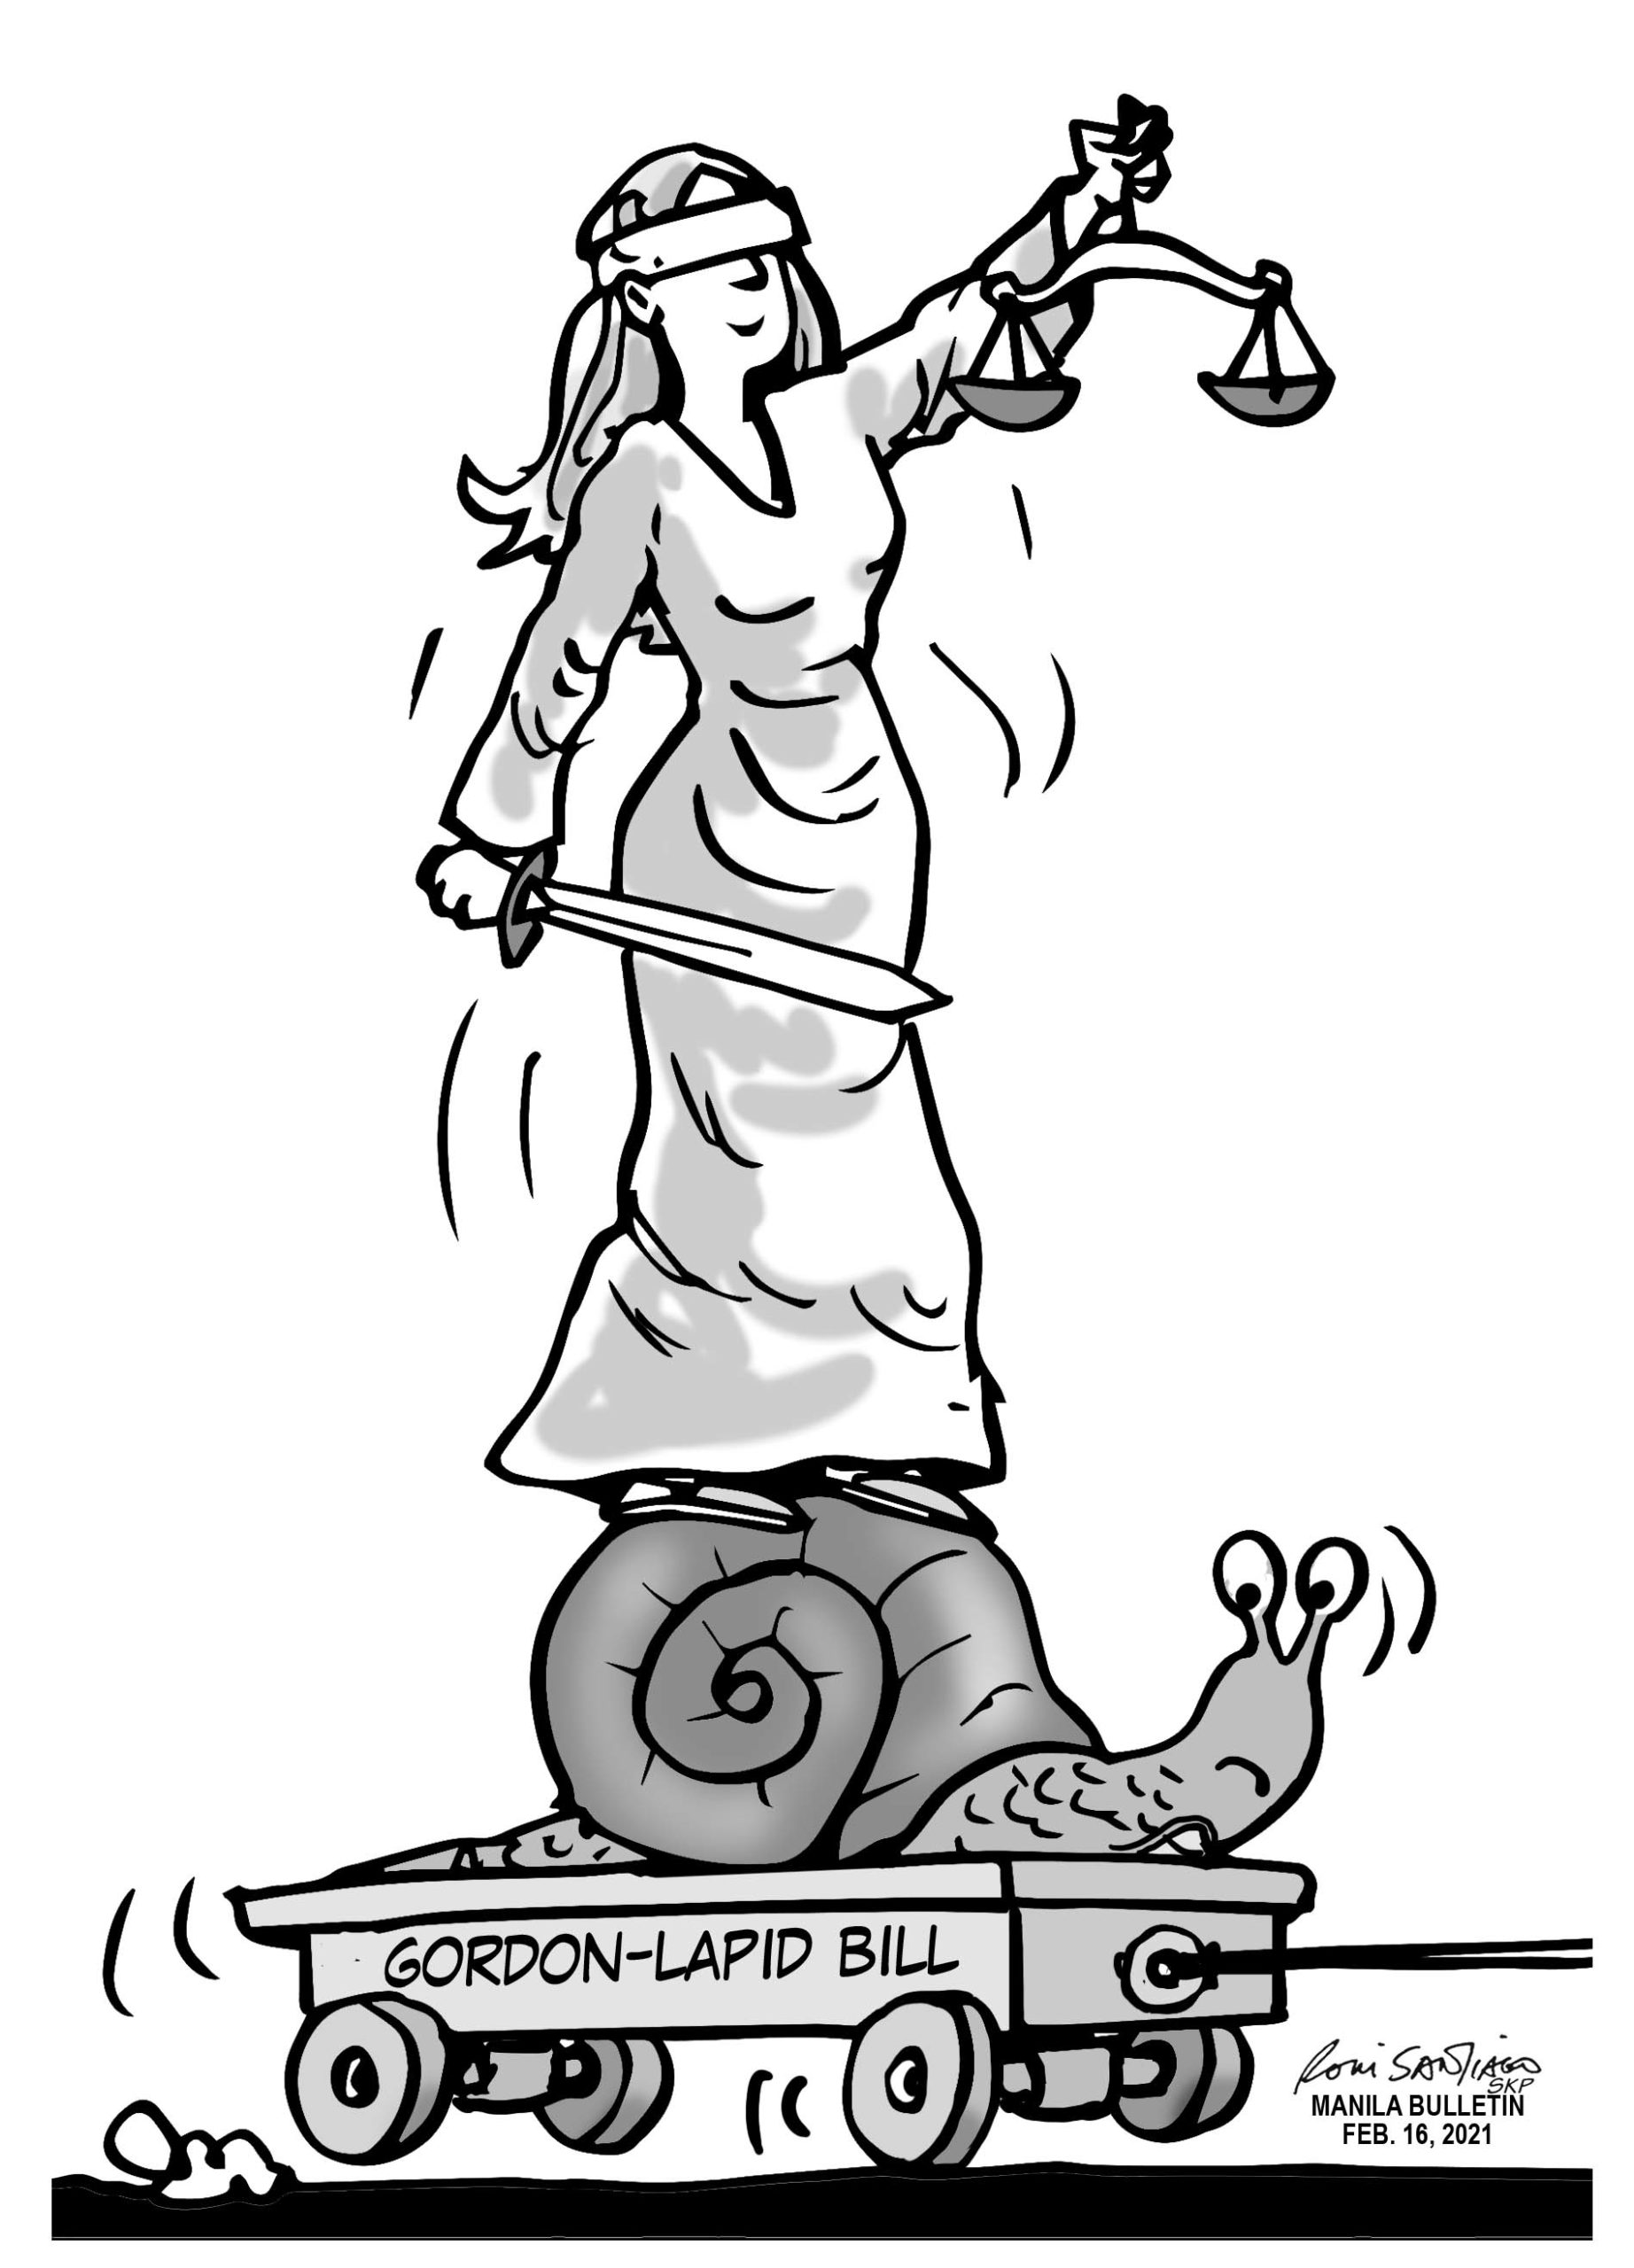 A invoice to scamper up administration of justice in courts